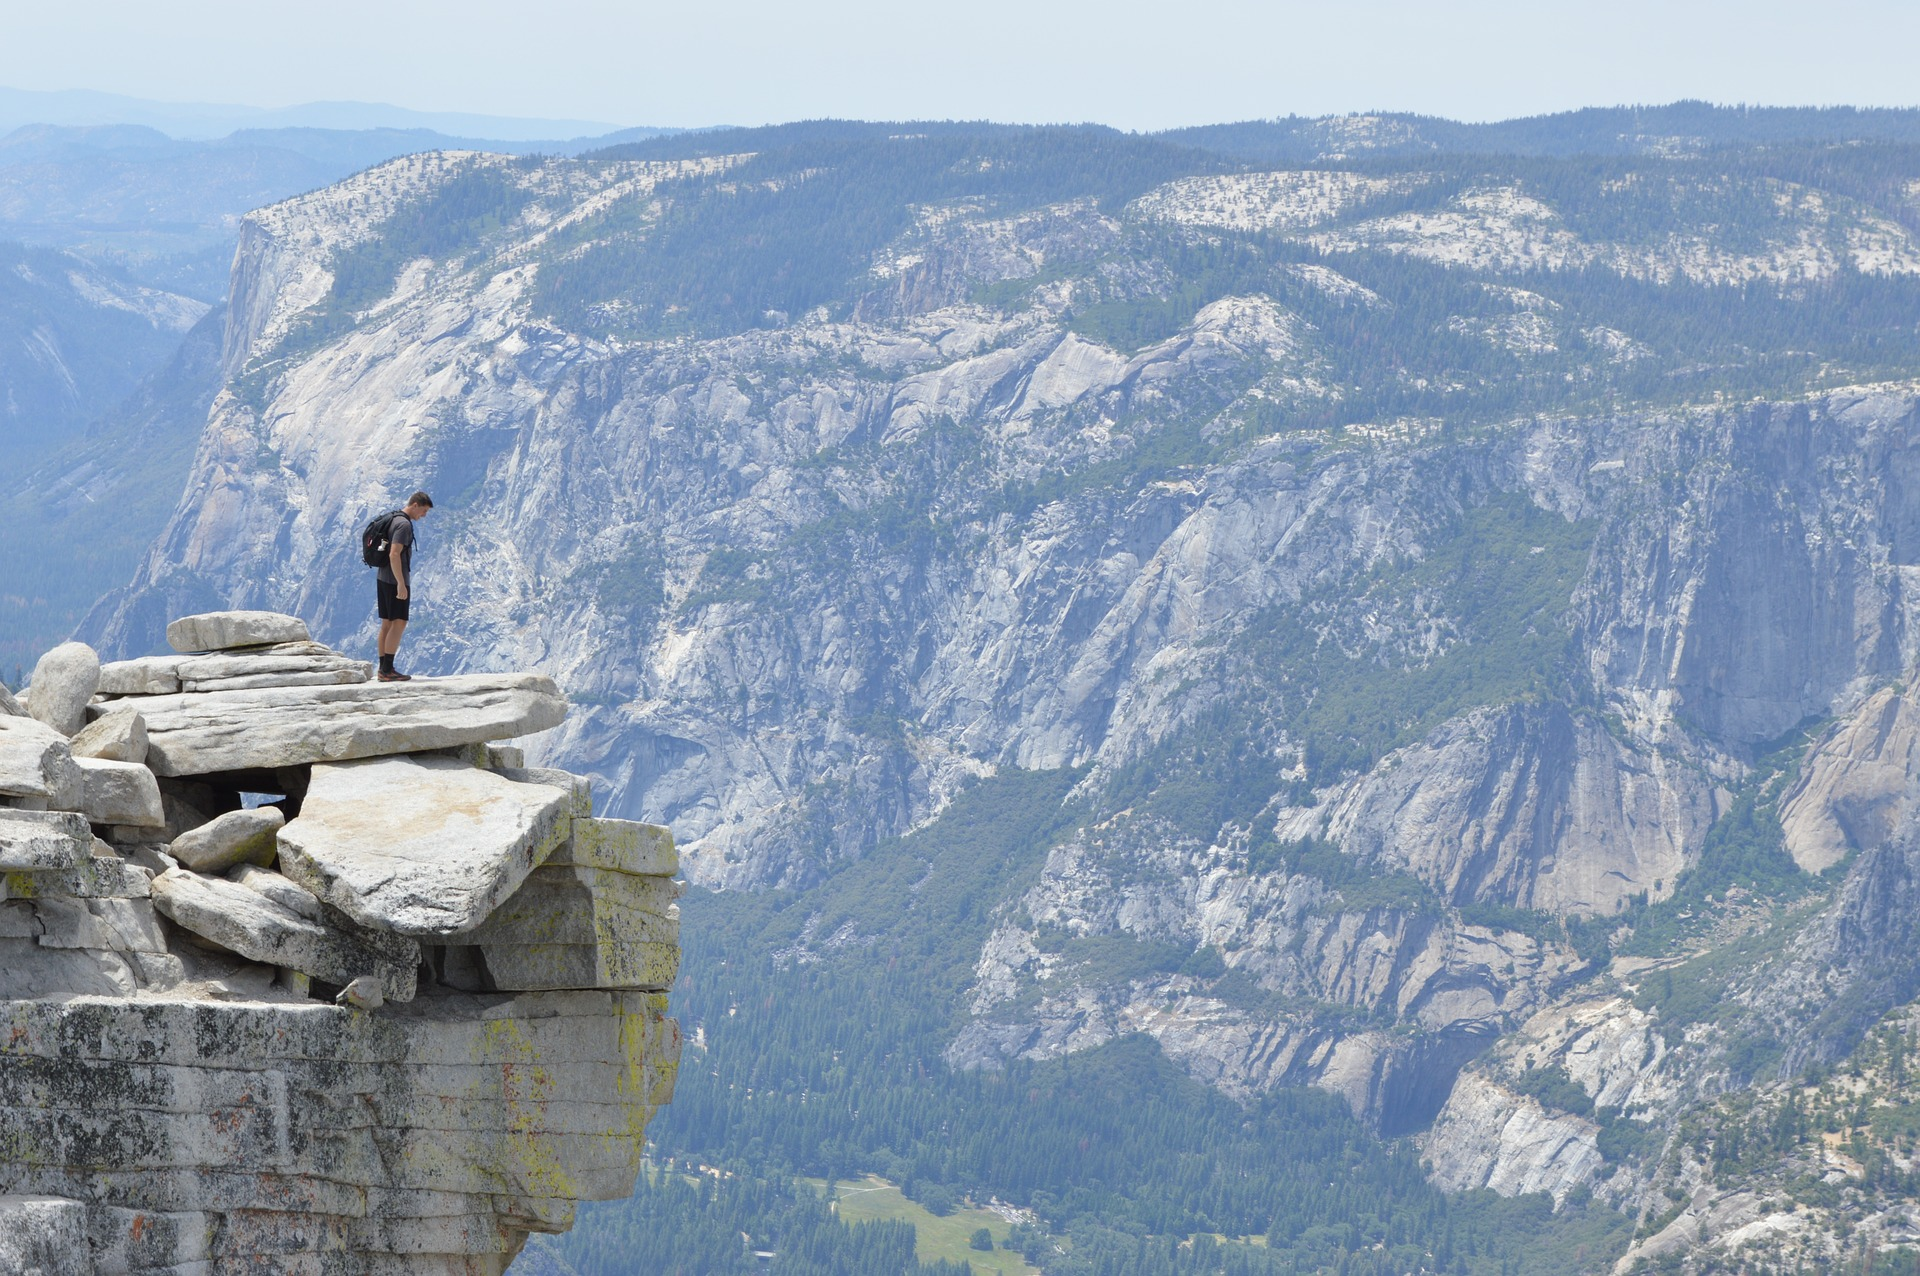 Climbing Through Life With Or Without Ropes? A Jewish Take On Free Solo